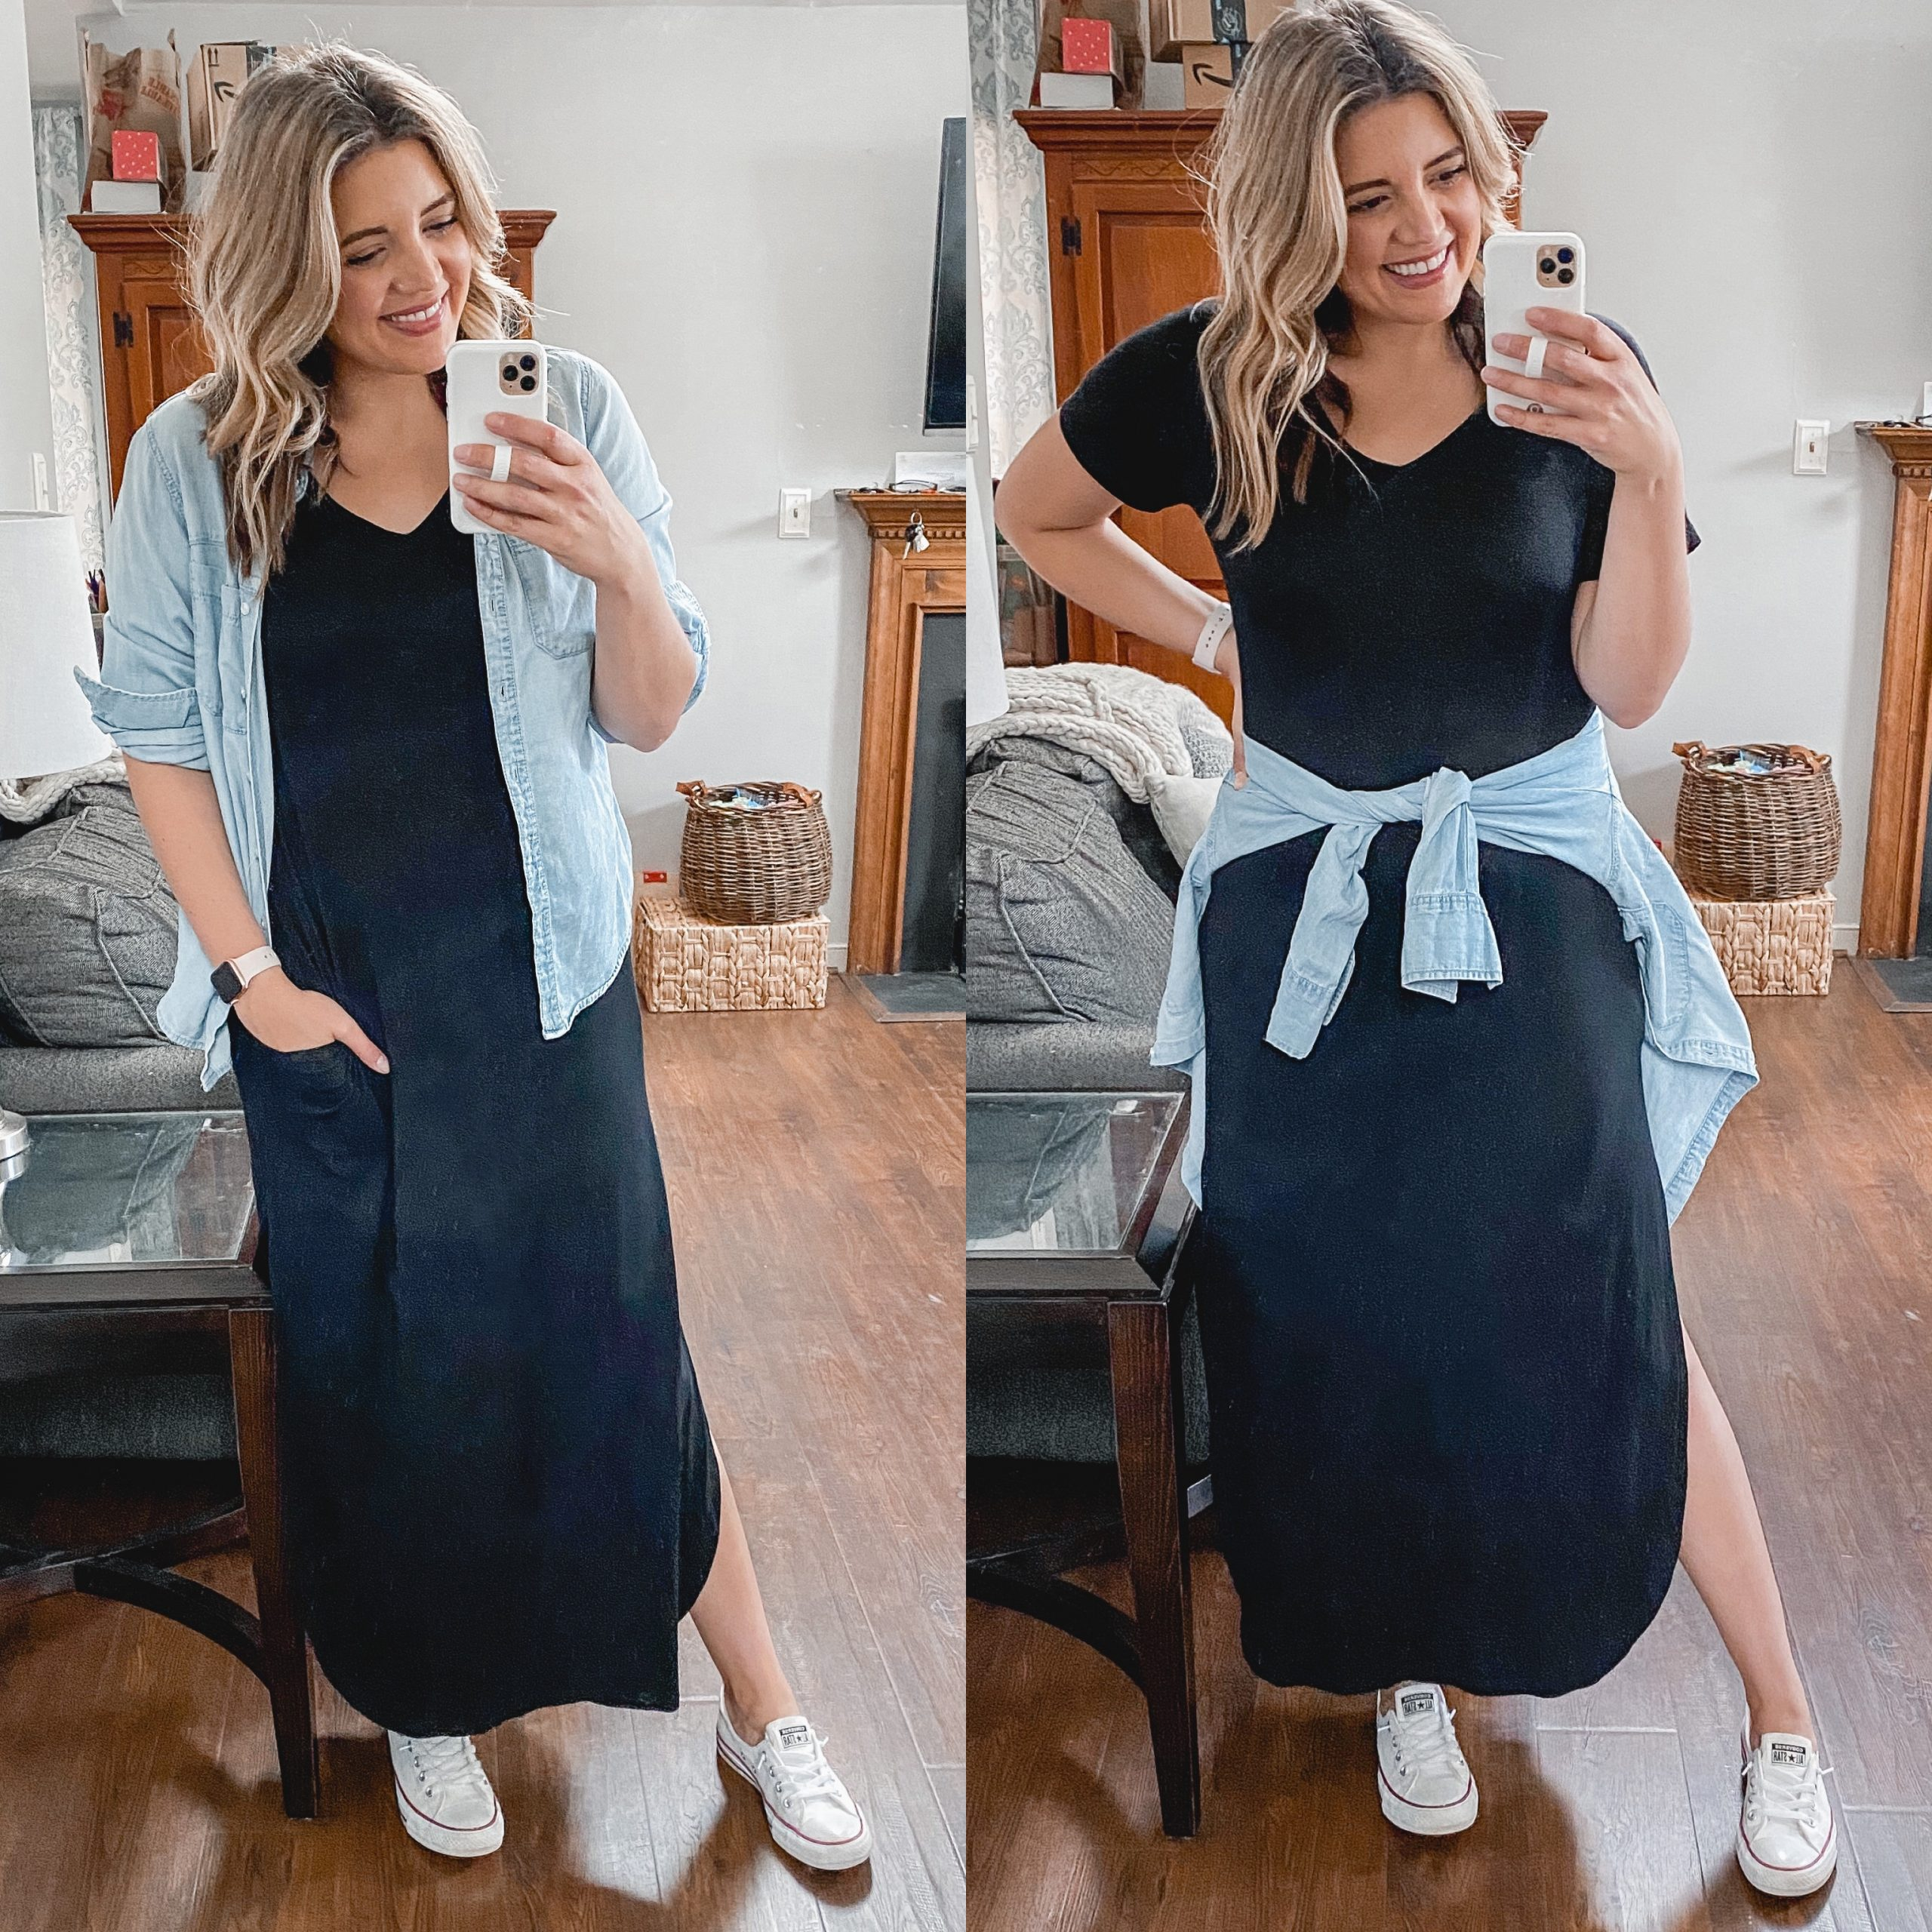 Virginia blogger, Lauren Dix, shares an entire week's worth of black maxi dress outfits for spring!